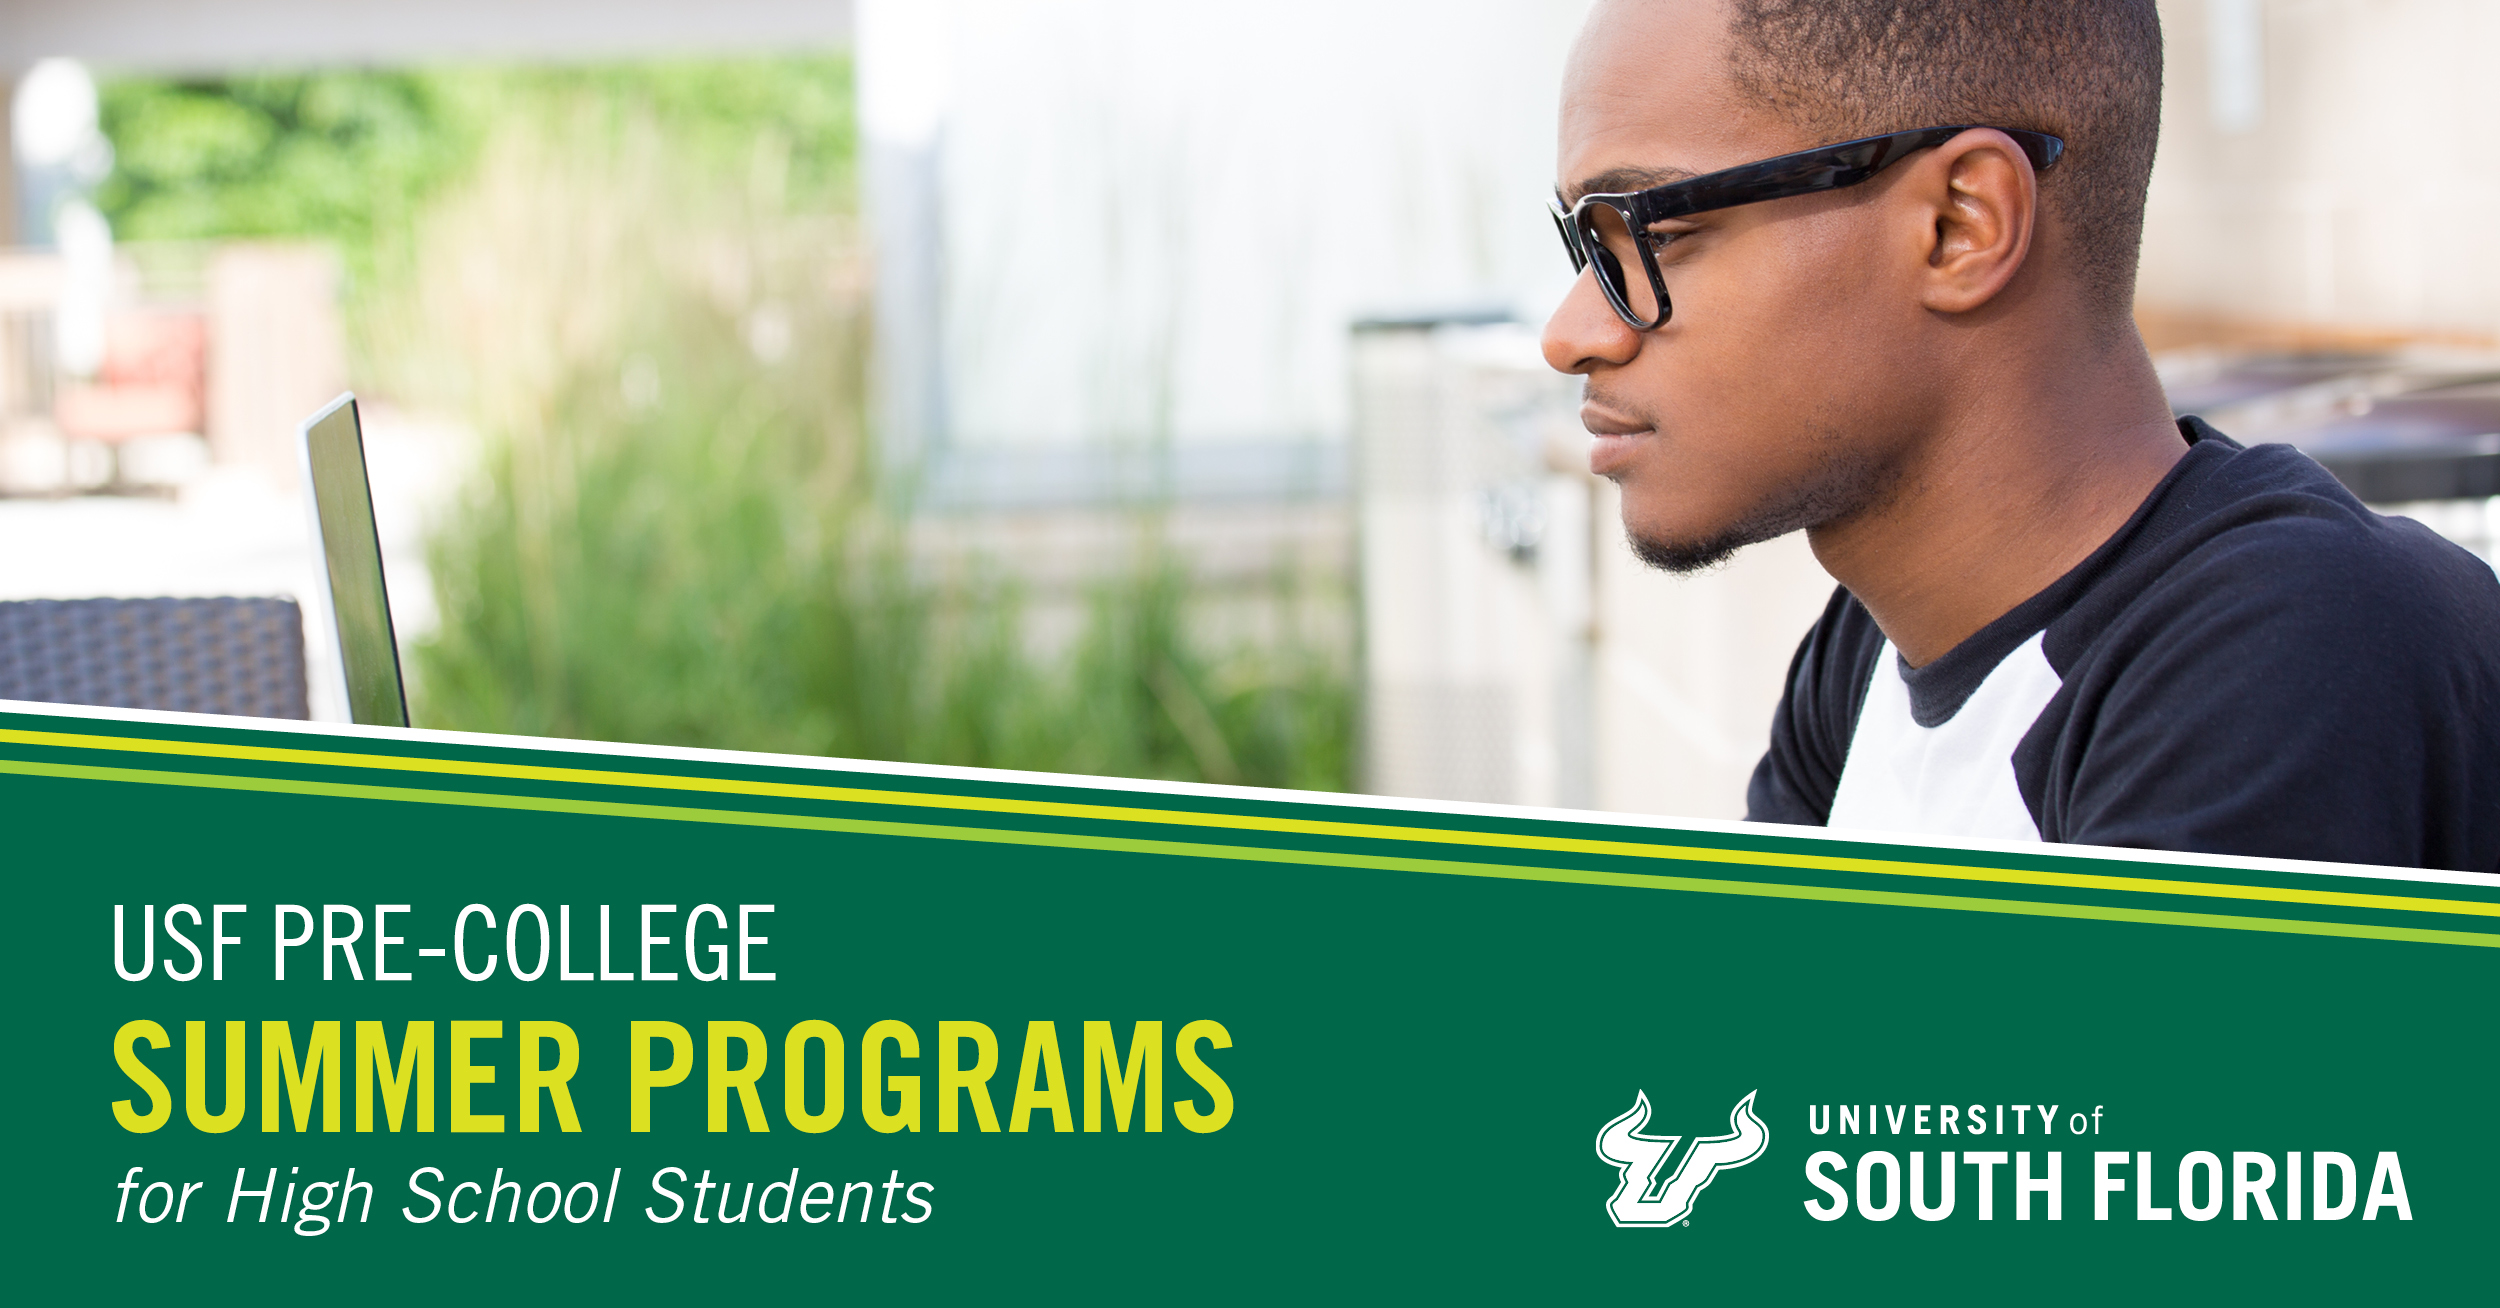 University of South Florida Pre-College: Summer Programs for High School Students